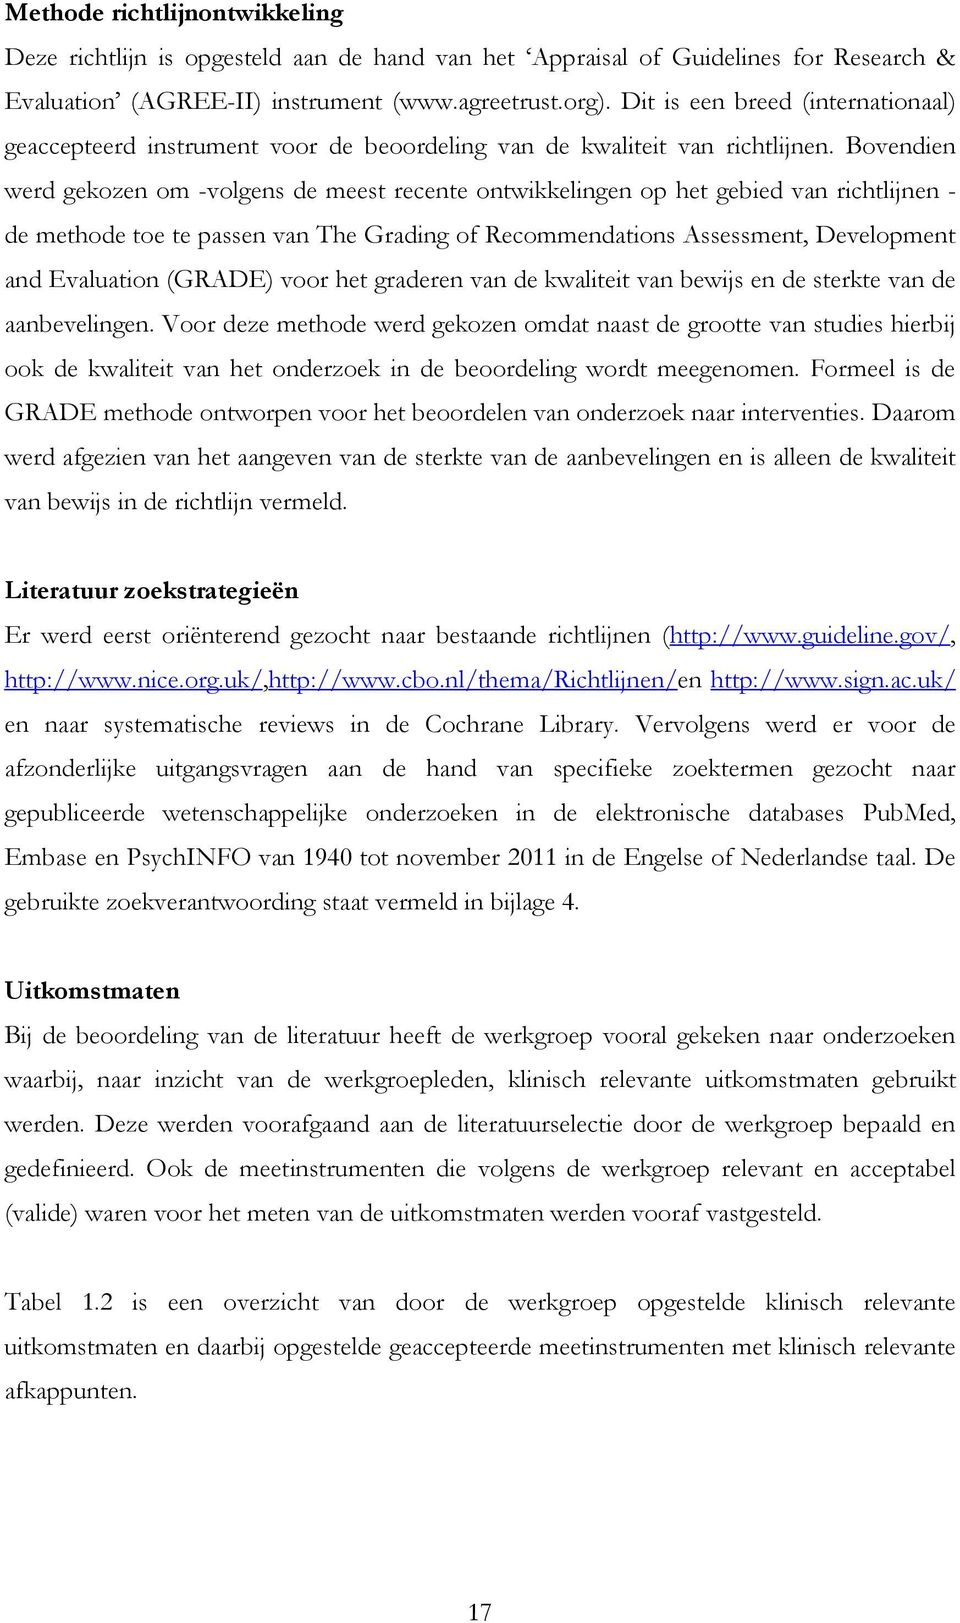 Bovendien werd gekozen om -volgens de meest recente ontwikkelingen op het gebied van richtlijnen - de methode toe te passen van The Grading of Recommendations Assessment, Development and Evaluation